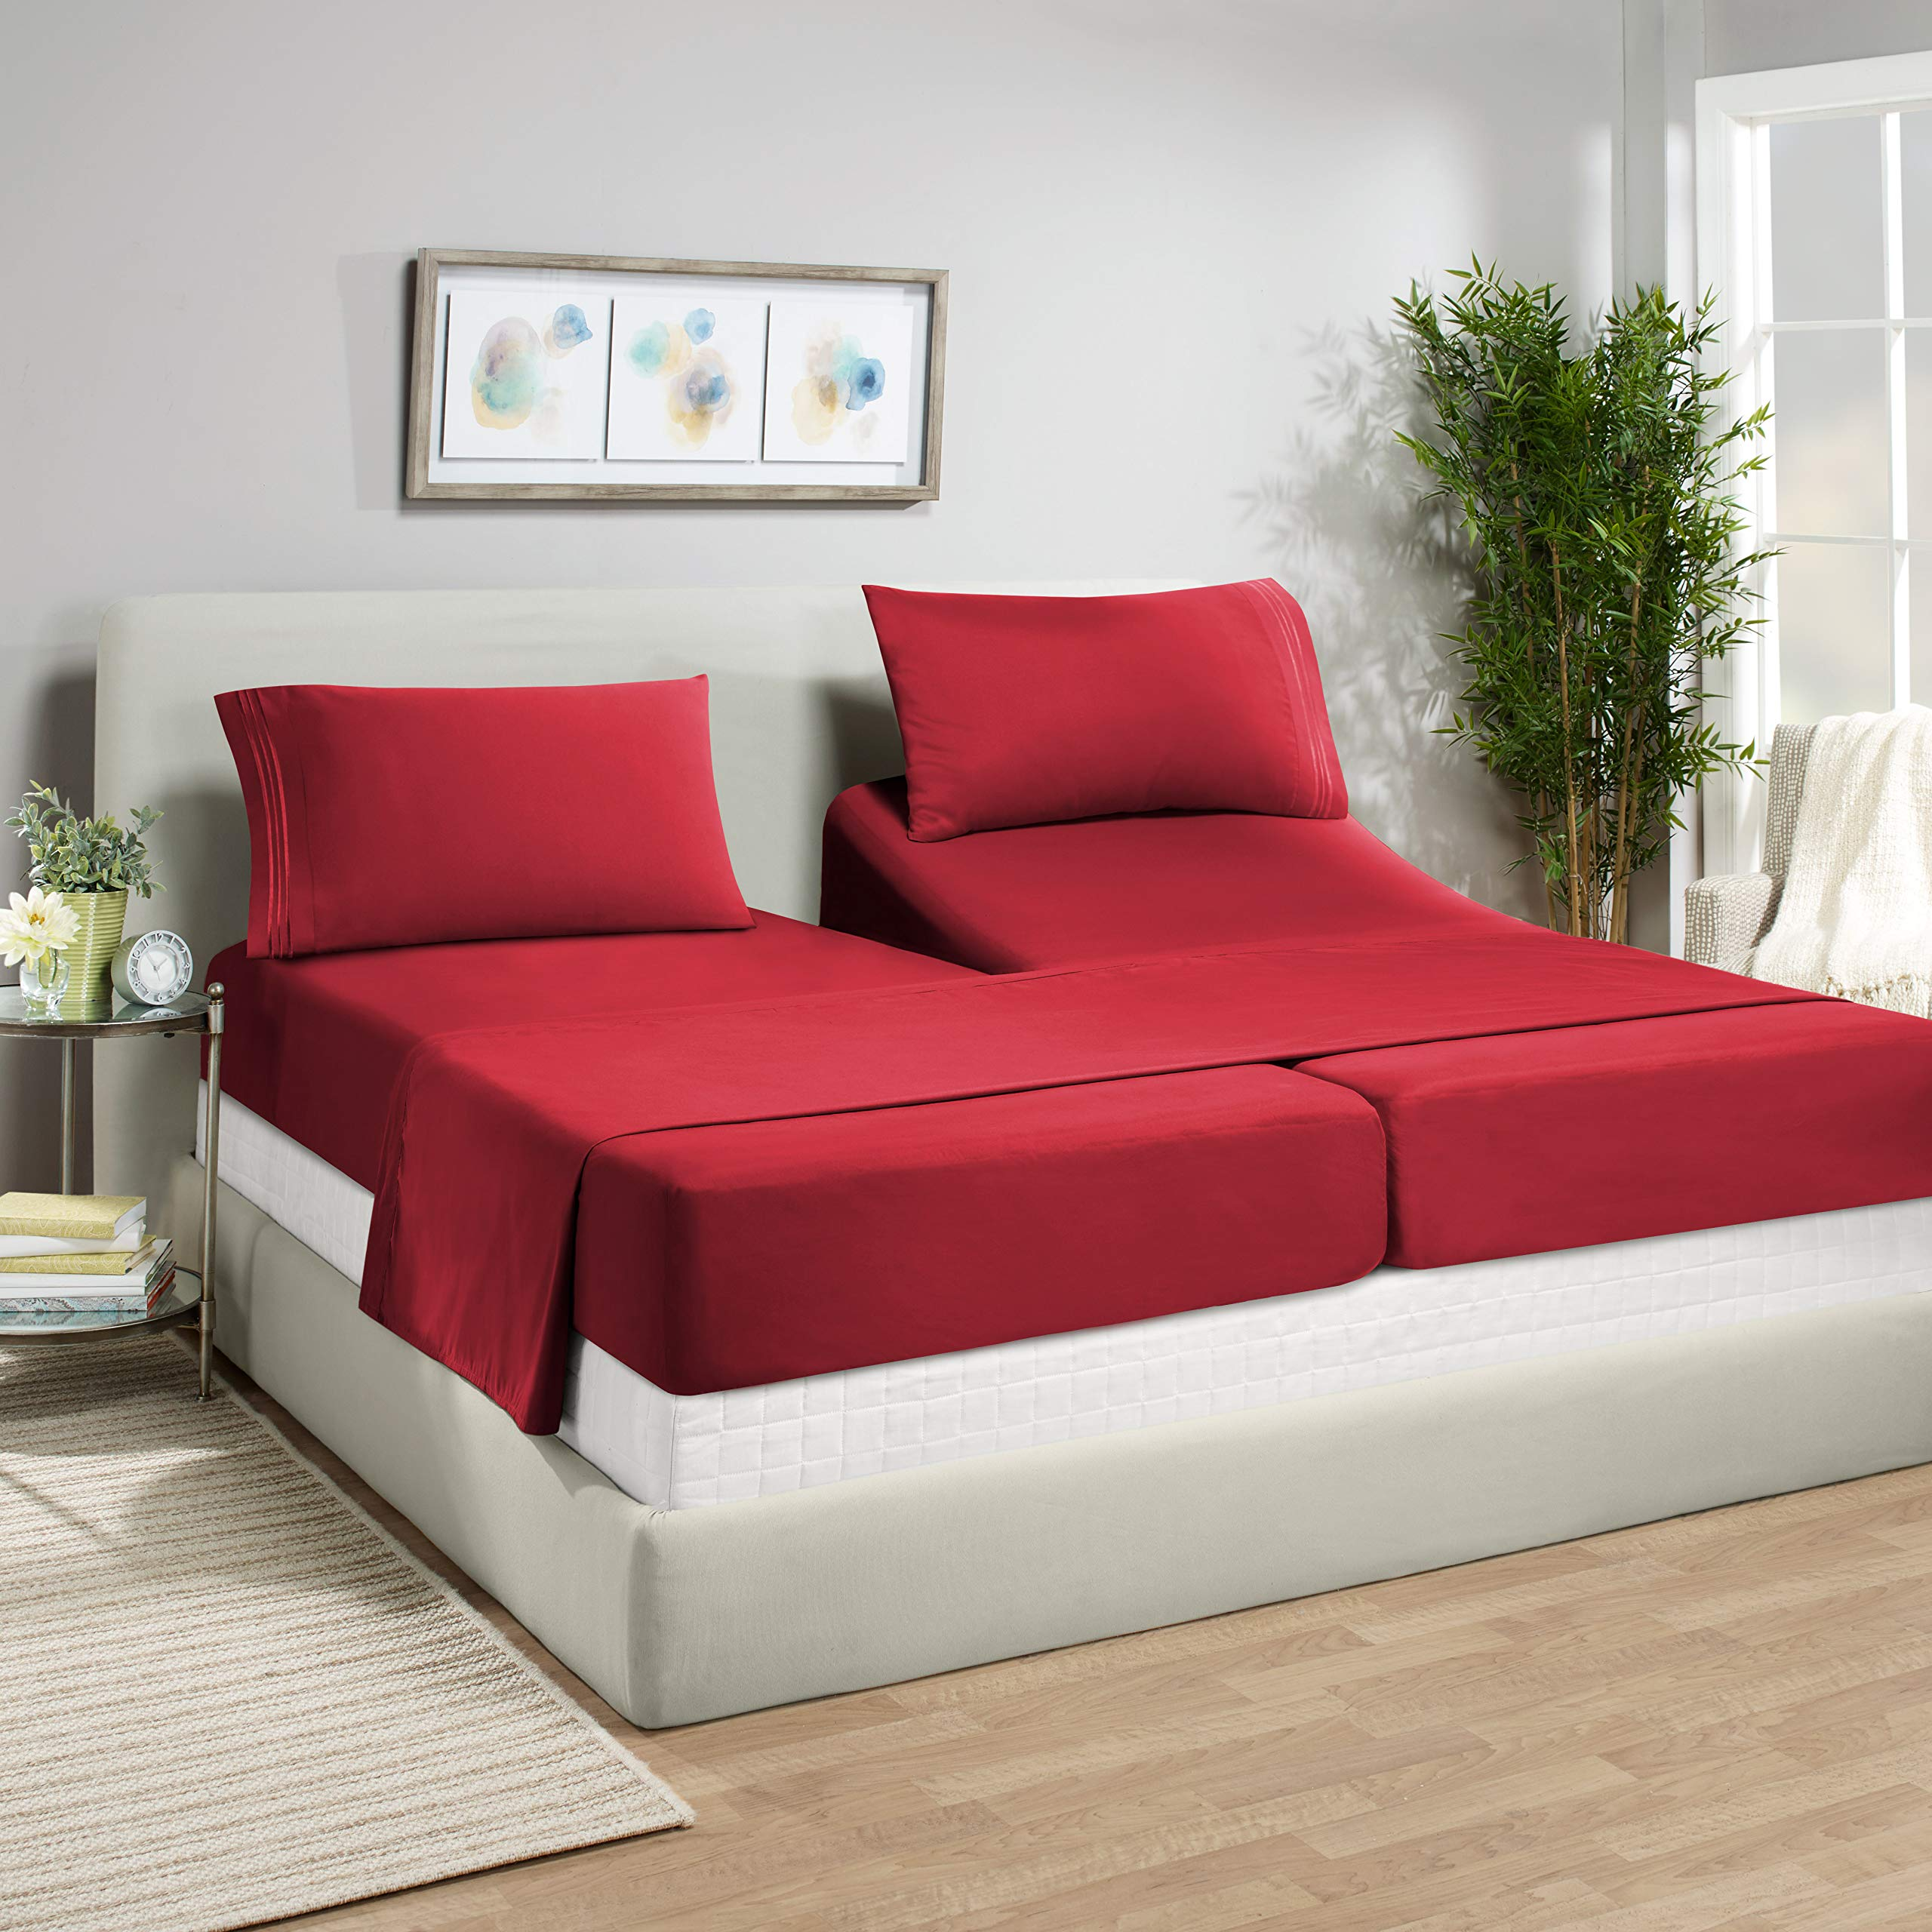 """Empyrean Bedding 14"""" - 16"""" Deep Pocket Fitted Sheet 5 Piece Set - Soft Double Brushed Microfiber Top Sheet - Wrinkle Free 2 Fitted Bed Sheets, 1 Flat Sheet and 2 Pillow Cases - Split King, Burgundy"""